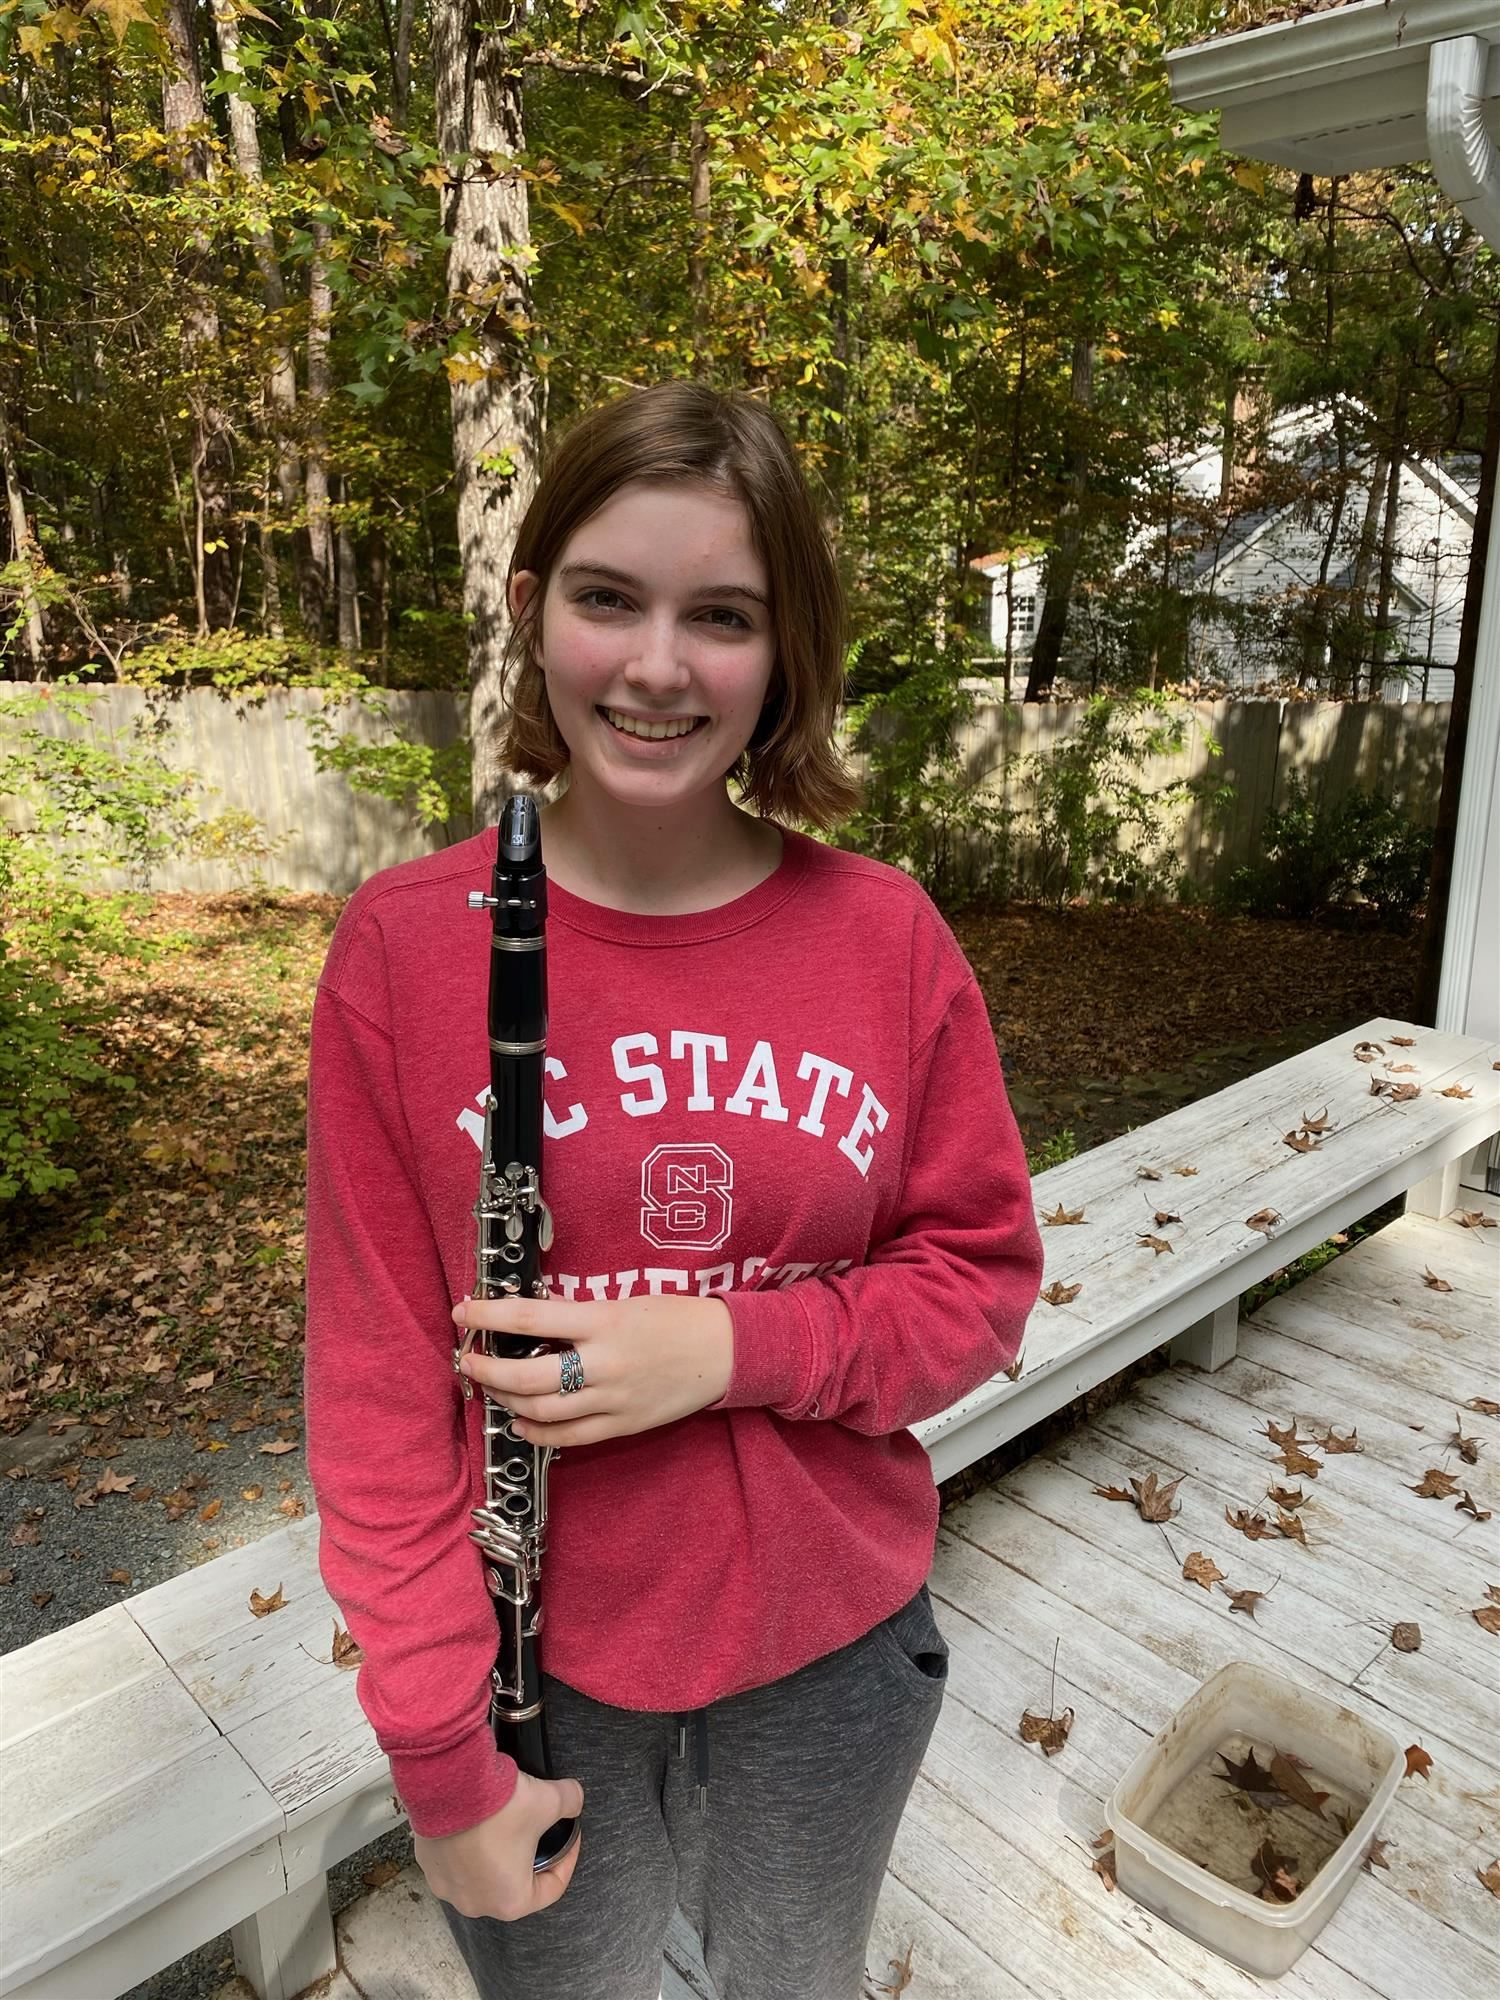 East clarinetist Talikoff